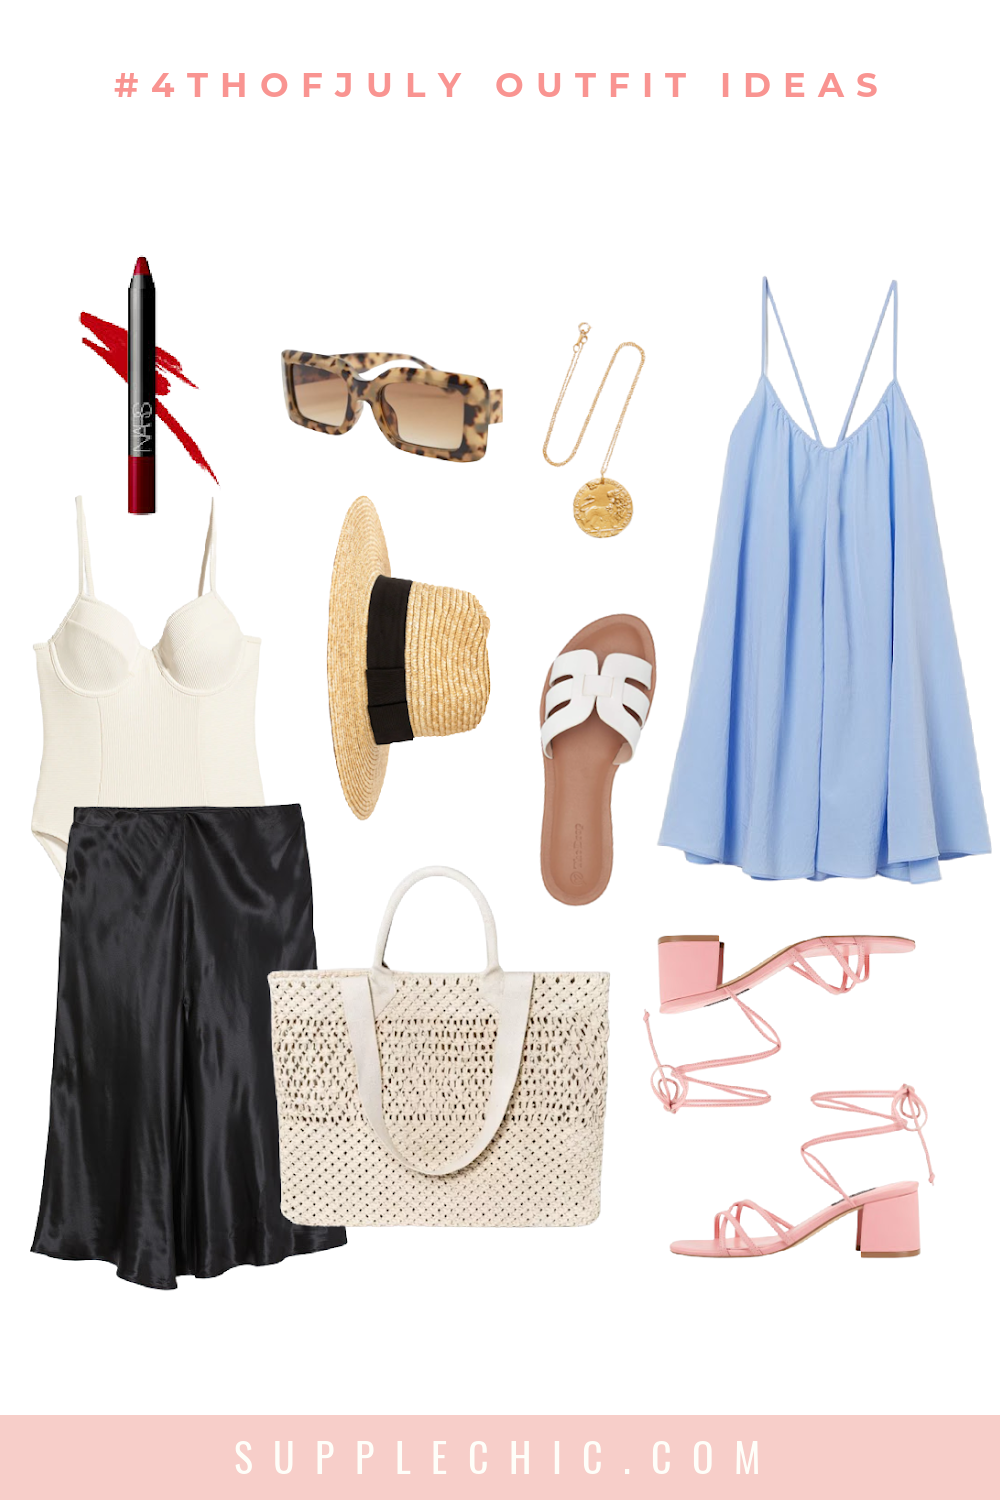 4TH-OF-JULY-OUTFITS-SALES-ROUND-UP. from supplechic a fashion and lifetstyle blog based out of baltimore